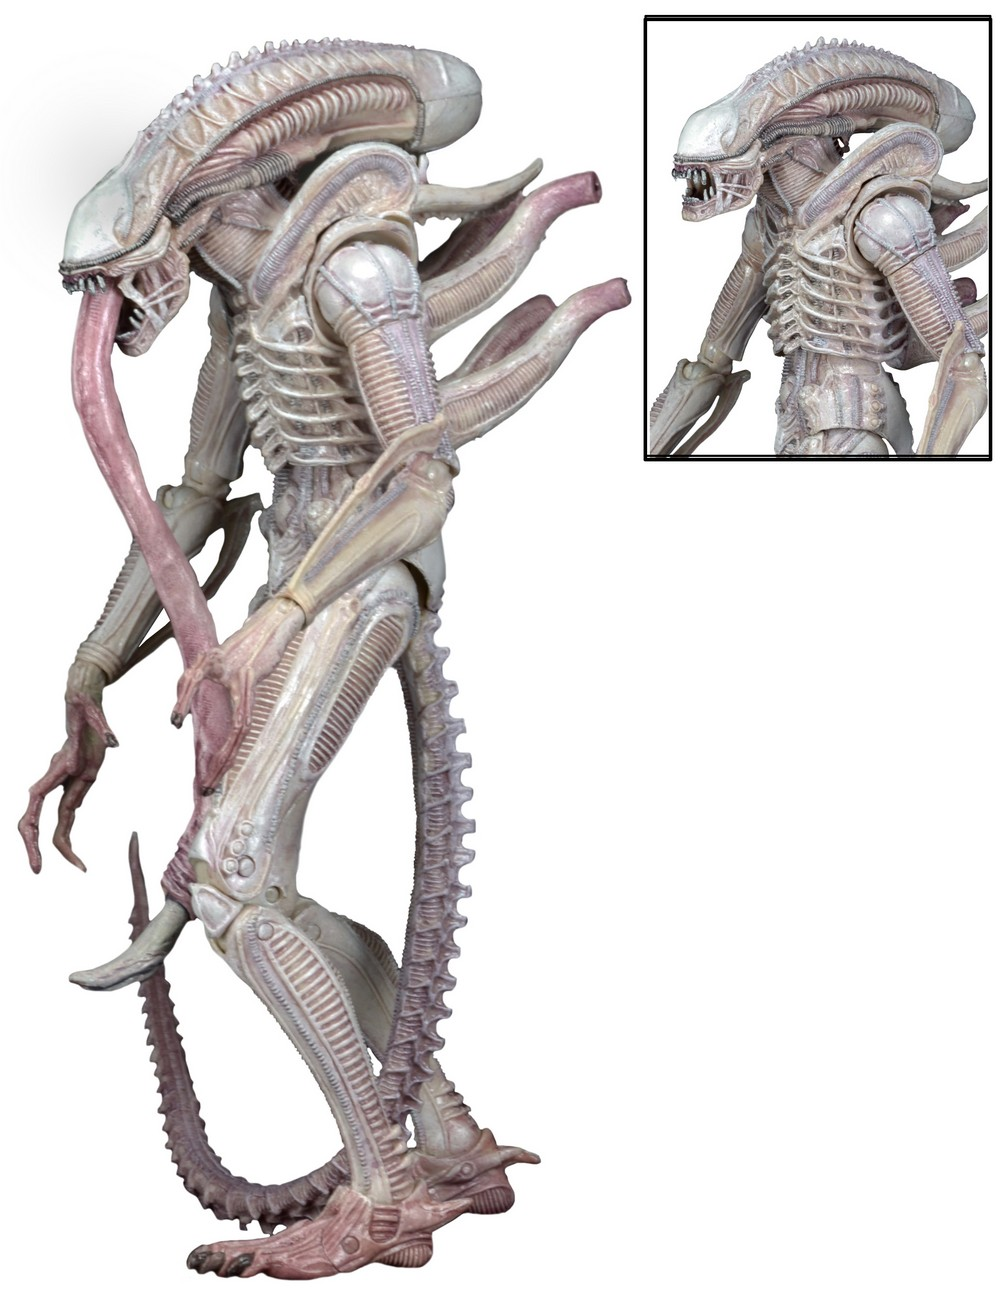 aliens series 9 figures meaning of colors